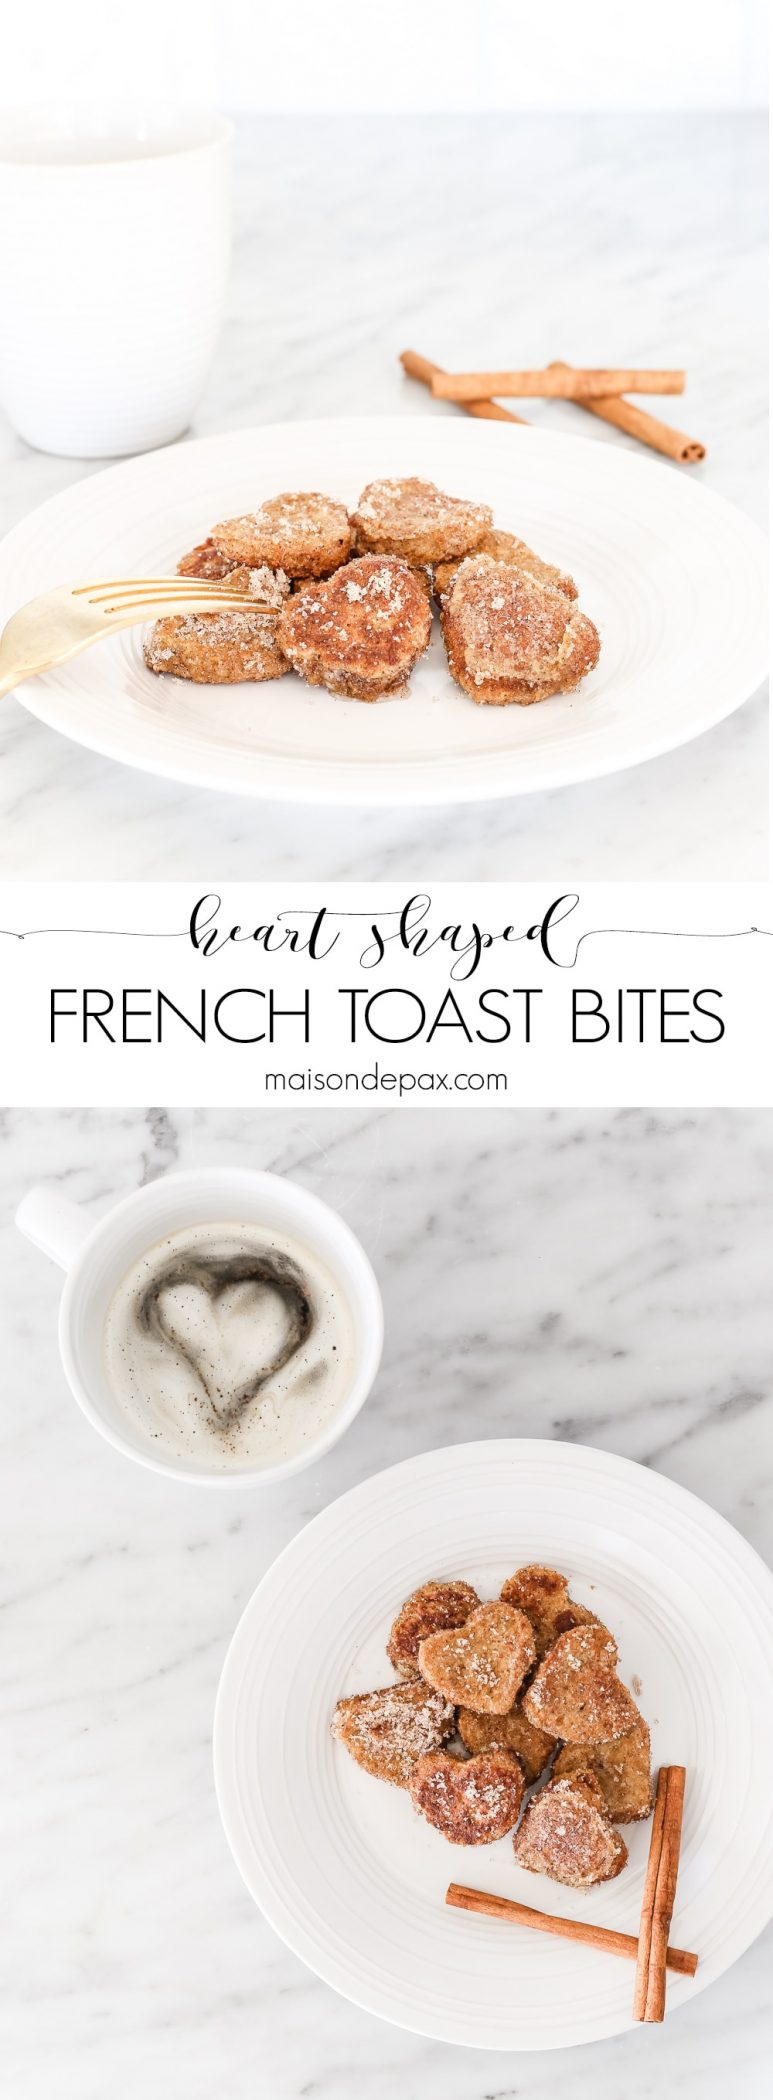 Heart French toast bites make the perfect Valentines breakfast. Get the full recipe for this easy treat! #valentinesrecipe #valentinesbreakfast #hearttoast #frenchtoast #valentinestreat